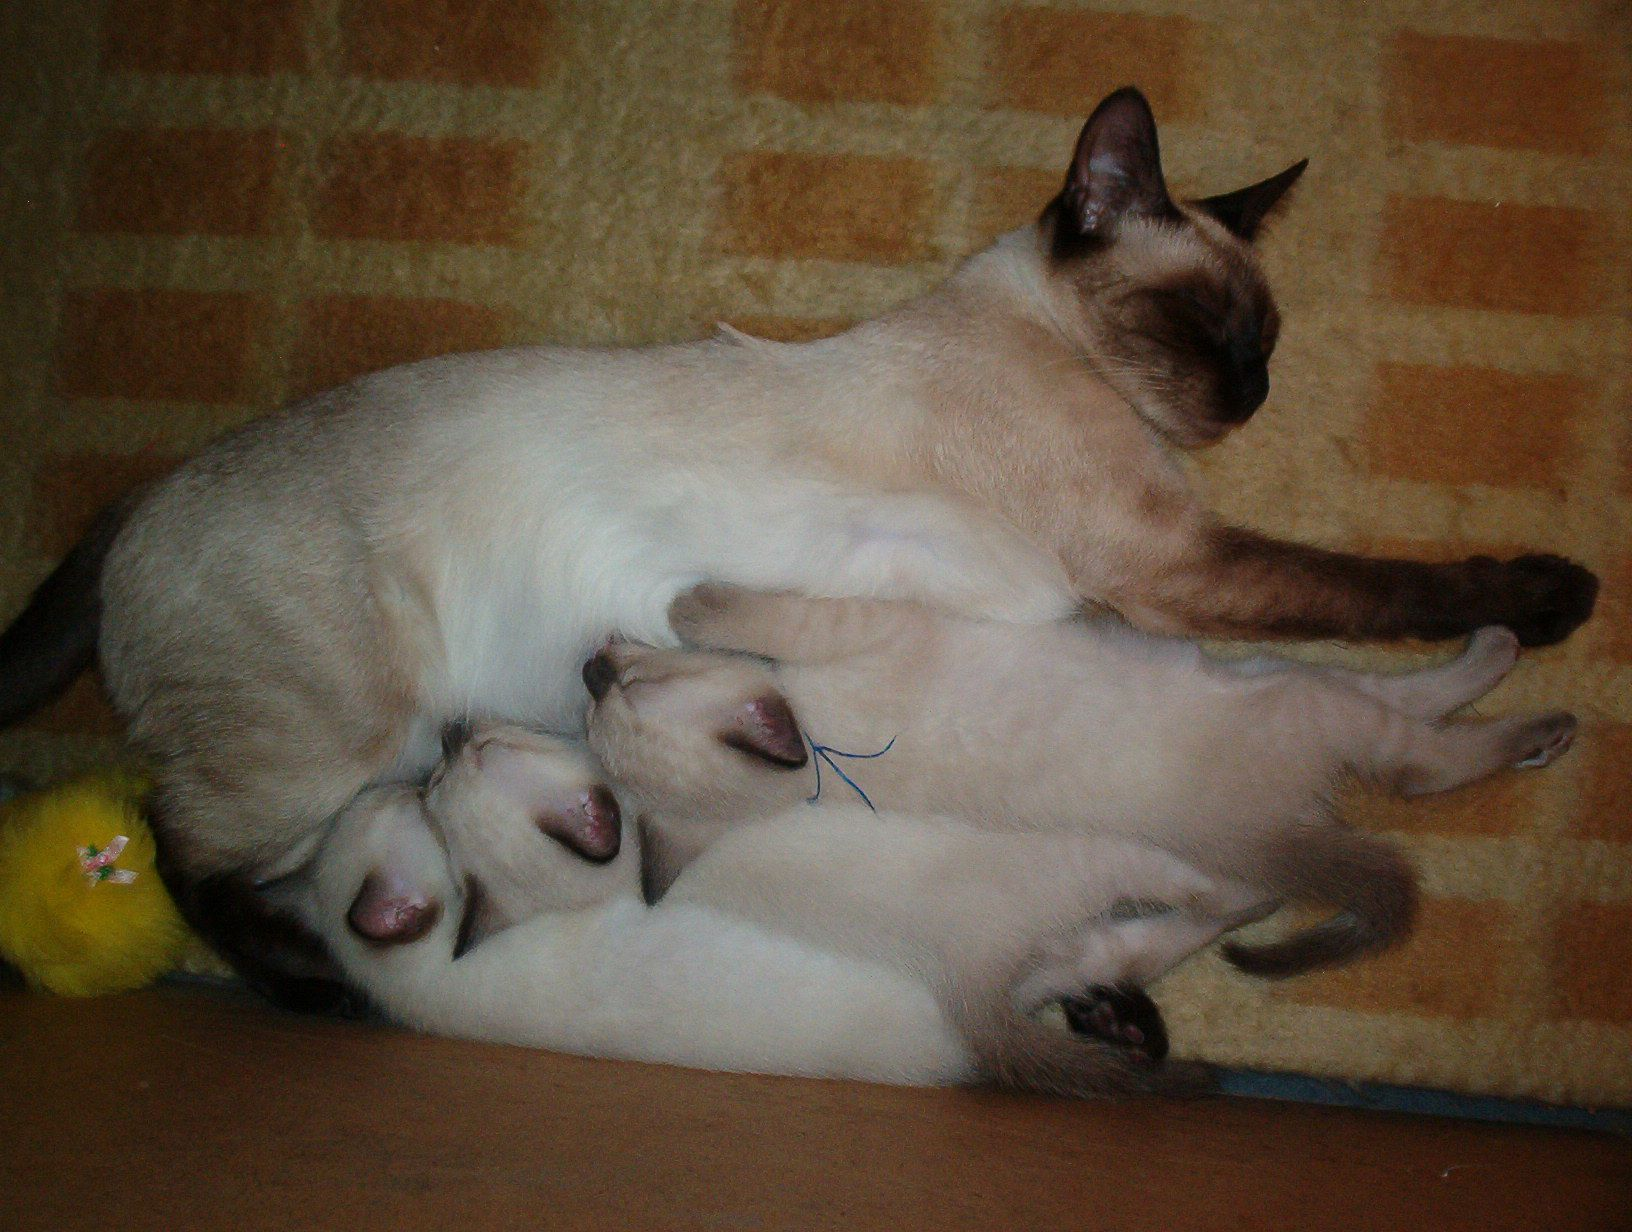 Newborn Siamese Kittens With Their Mom Newborn Kittens Siamese Kittens Cats And Kittens